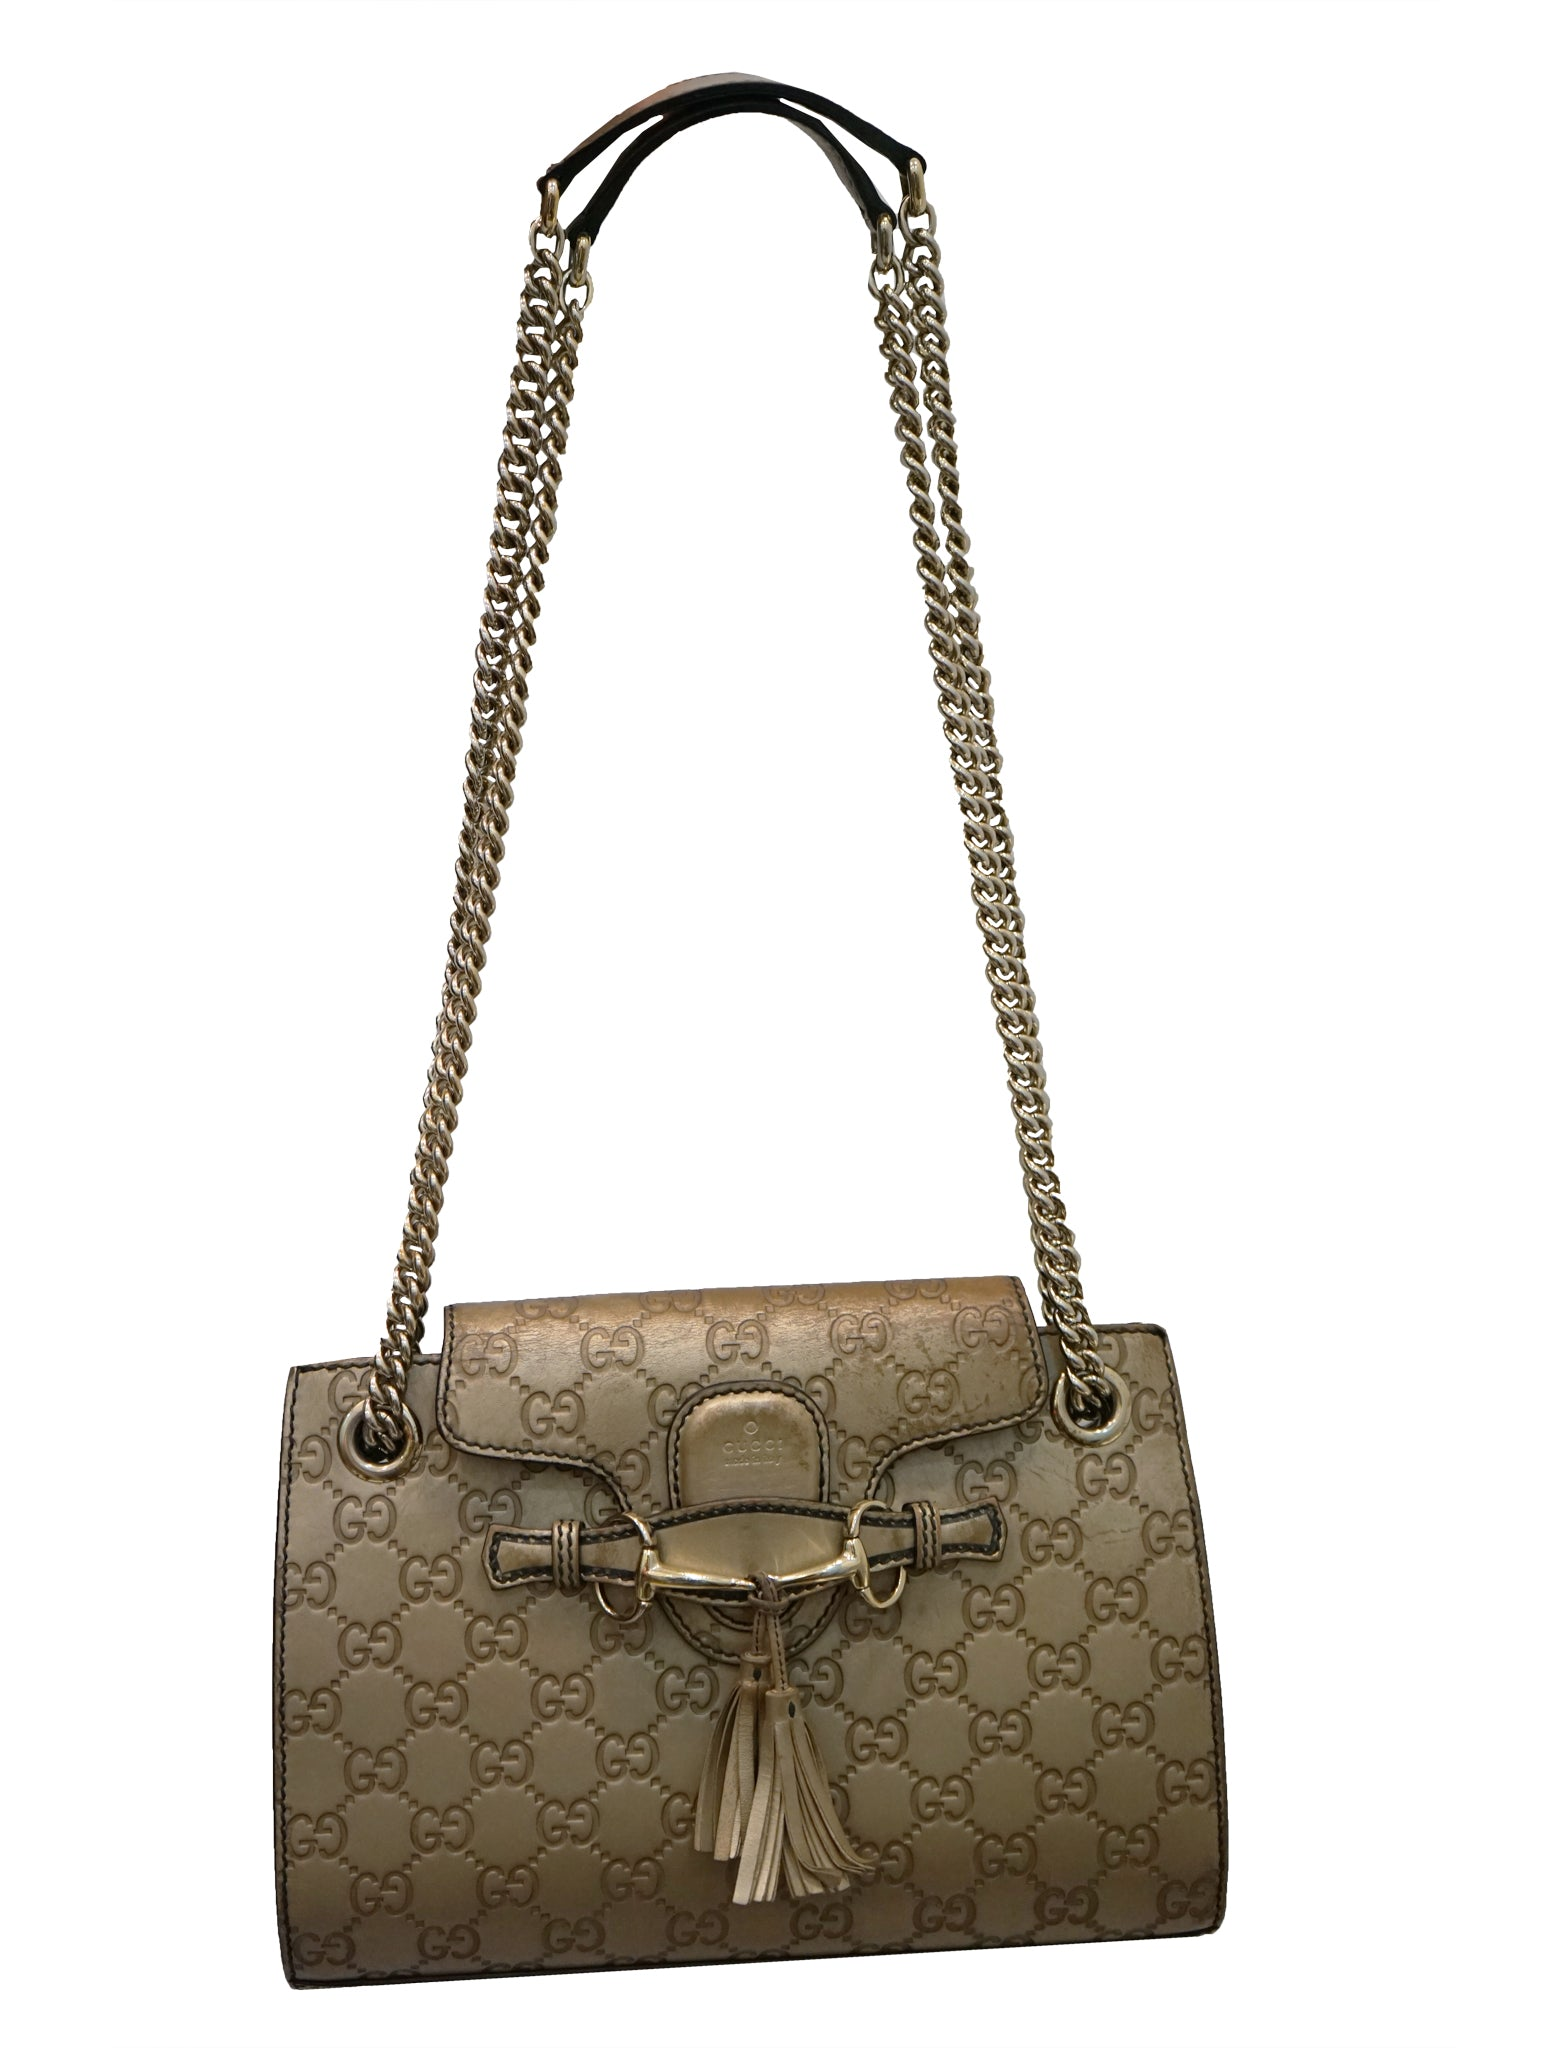 METALLIC GUCCISSIMA LEATHER EMILY CHAIN